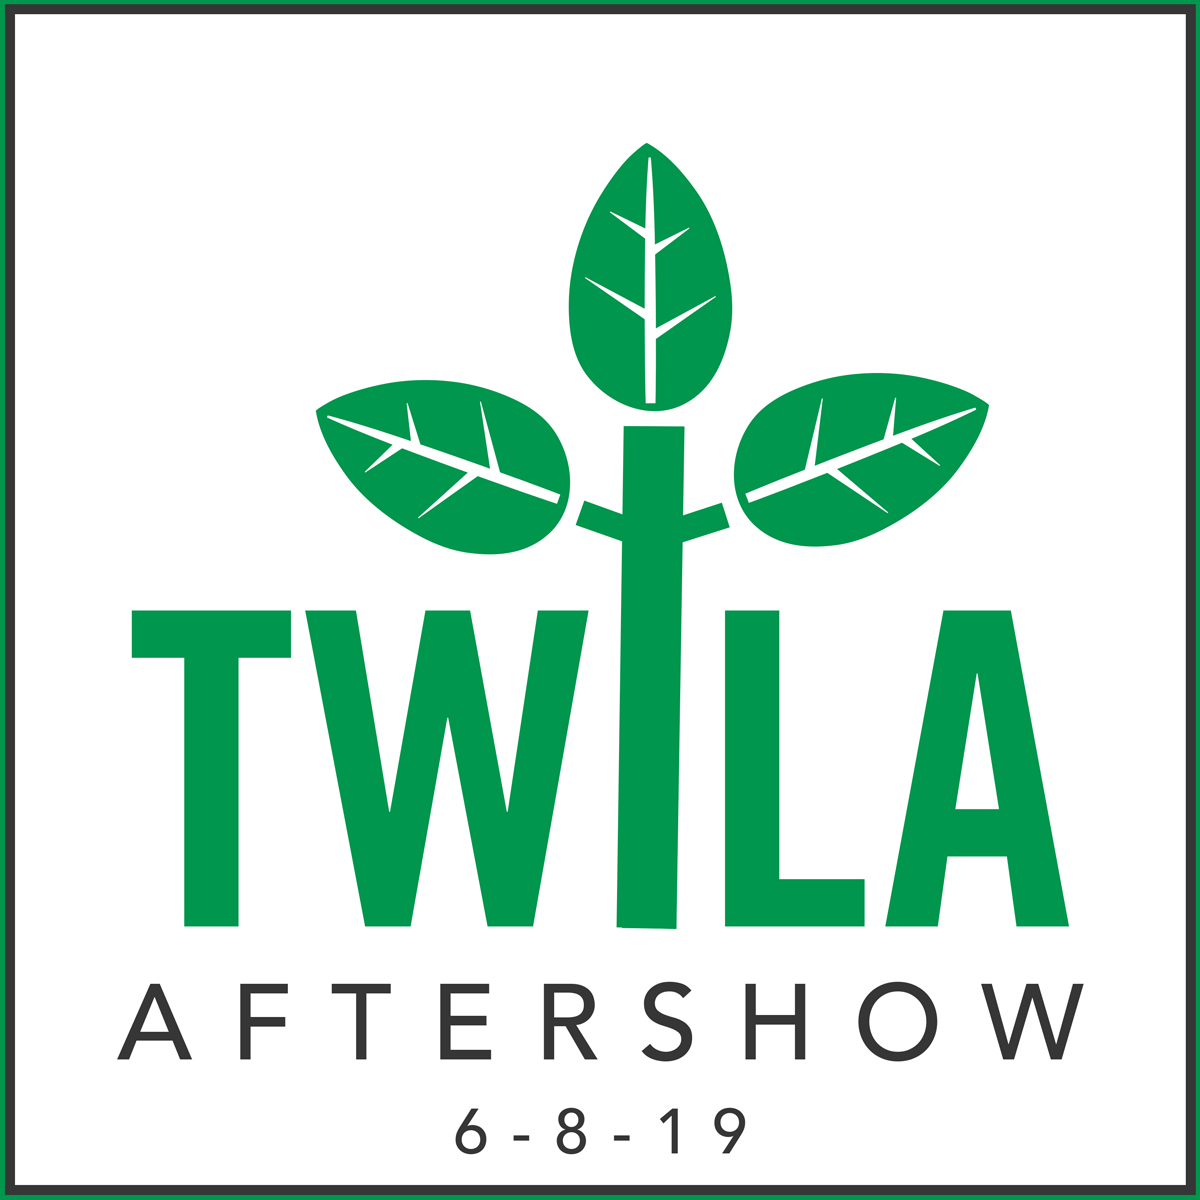 TWILA-After-Show-TN---6-8-19.jpg